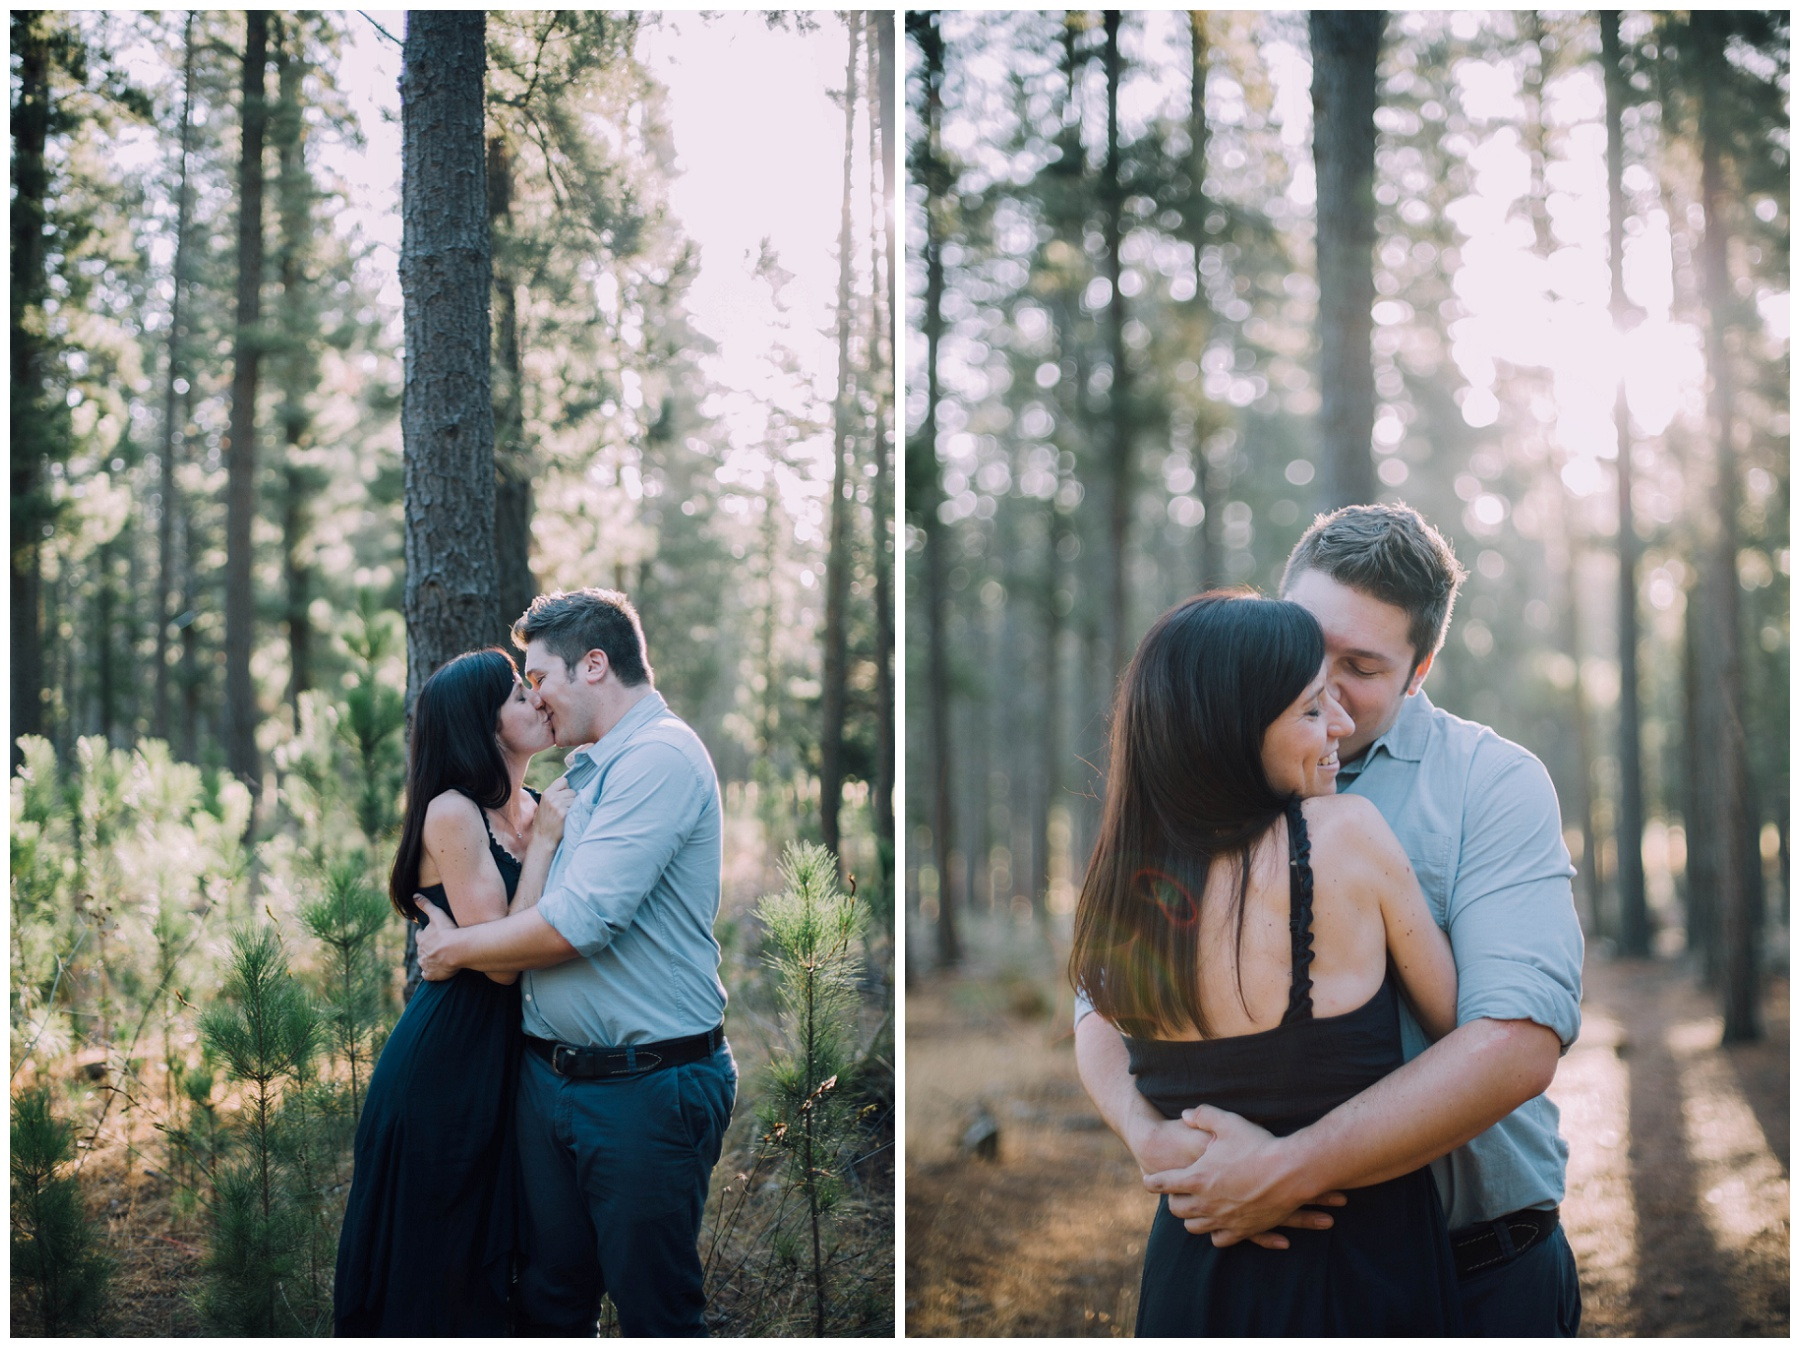 Ronel Kruger Cape Town Wedding and Lifestyle Photographer_1526.jpg